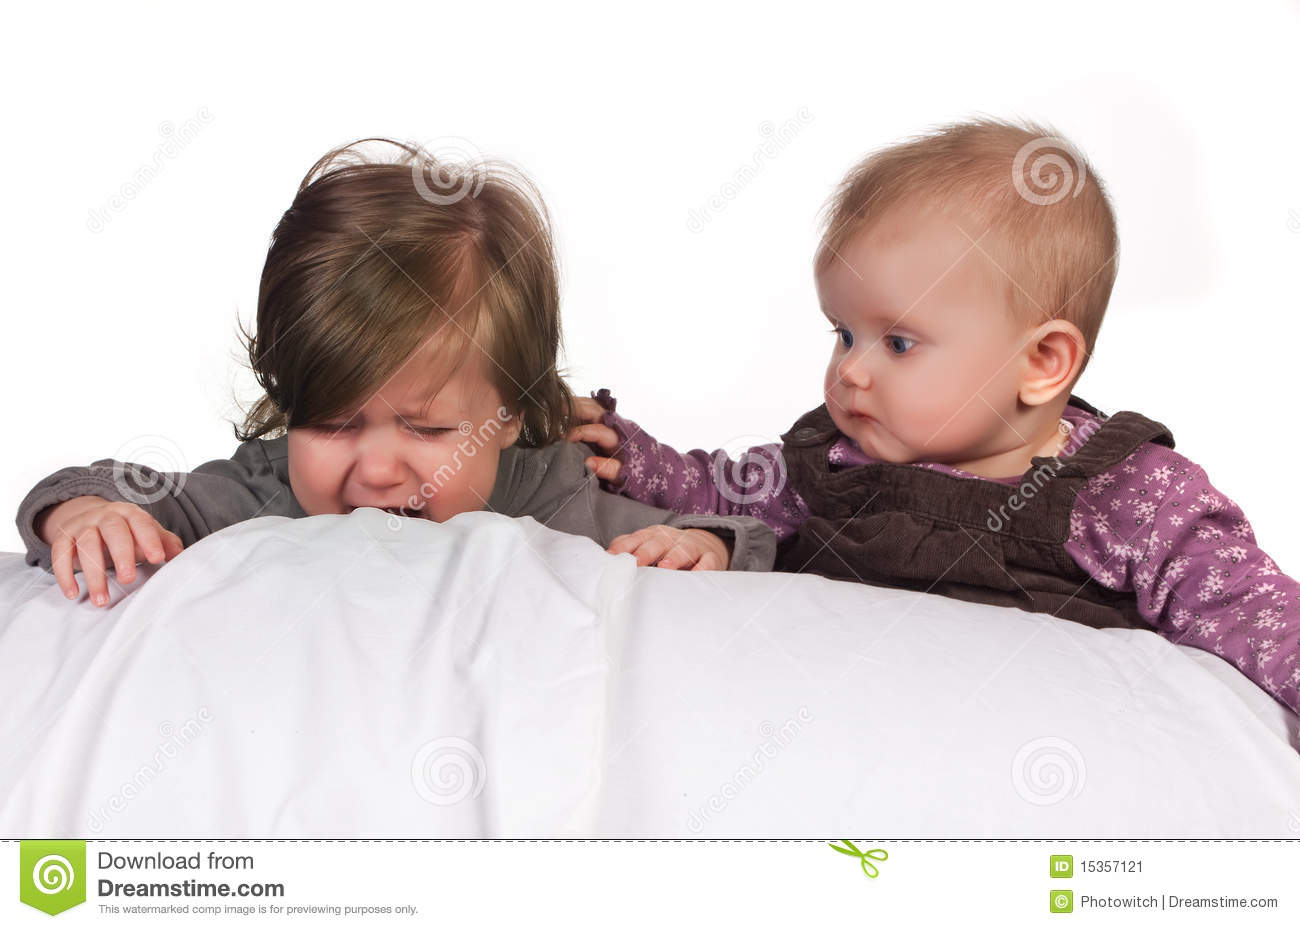 Comforting Another Baby Stock Image - Image: 15357121: www.dreamstime.com/stock-image-comforting-another-baby-image15357121